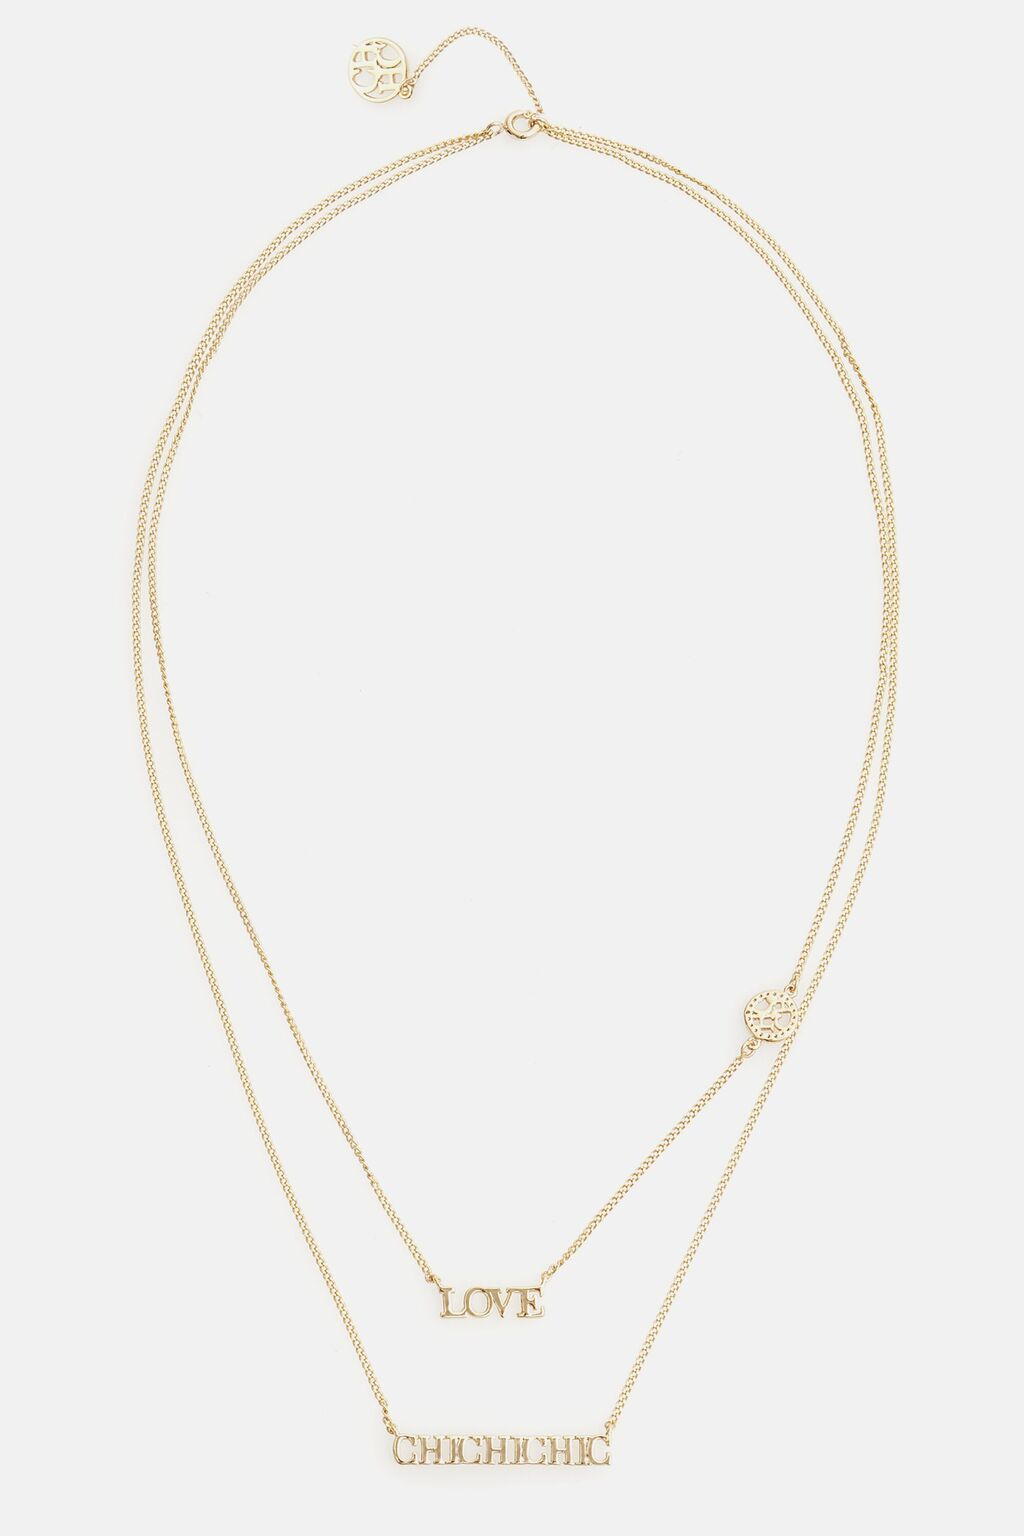 Between the Line layered necklace